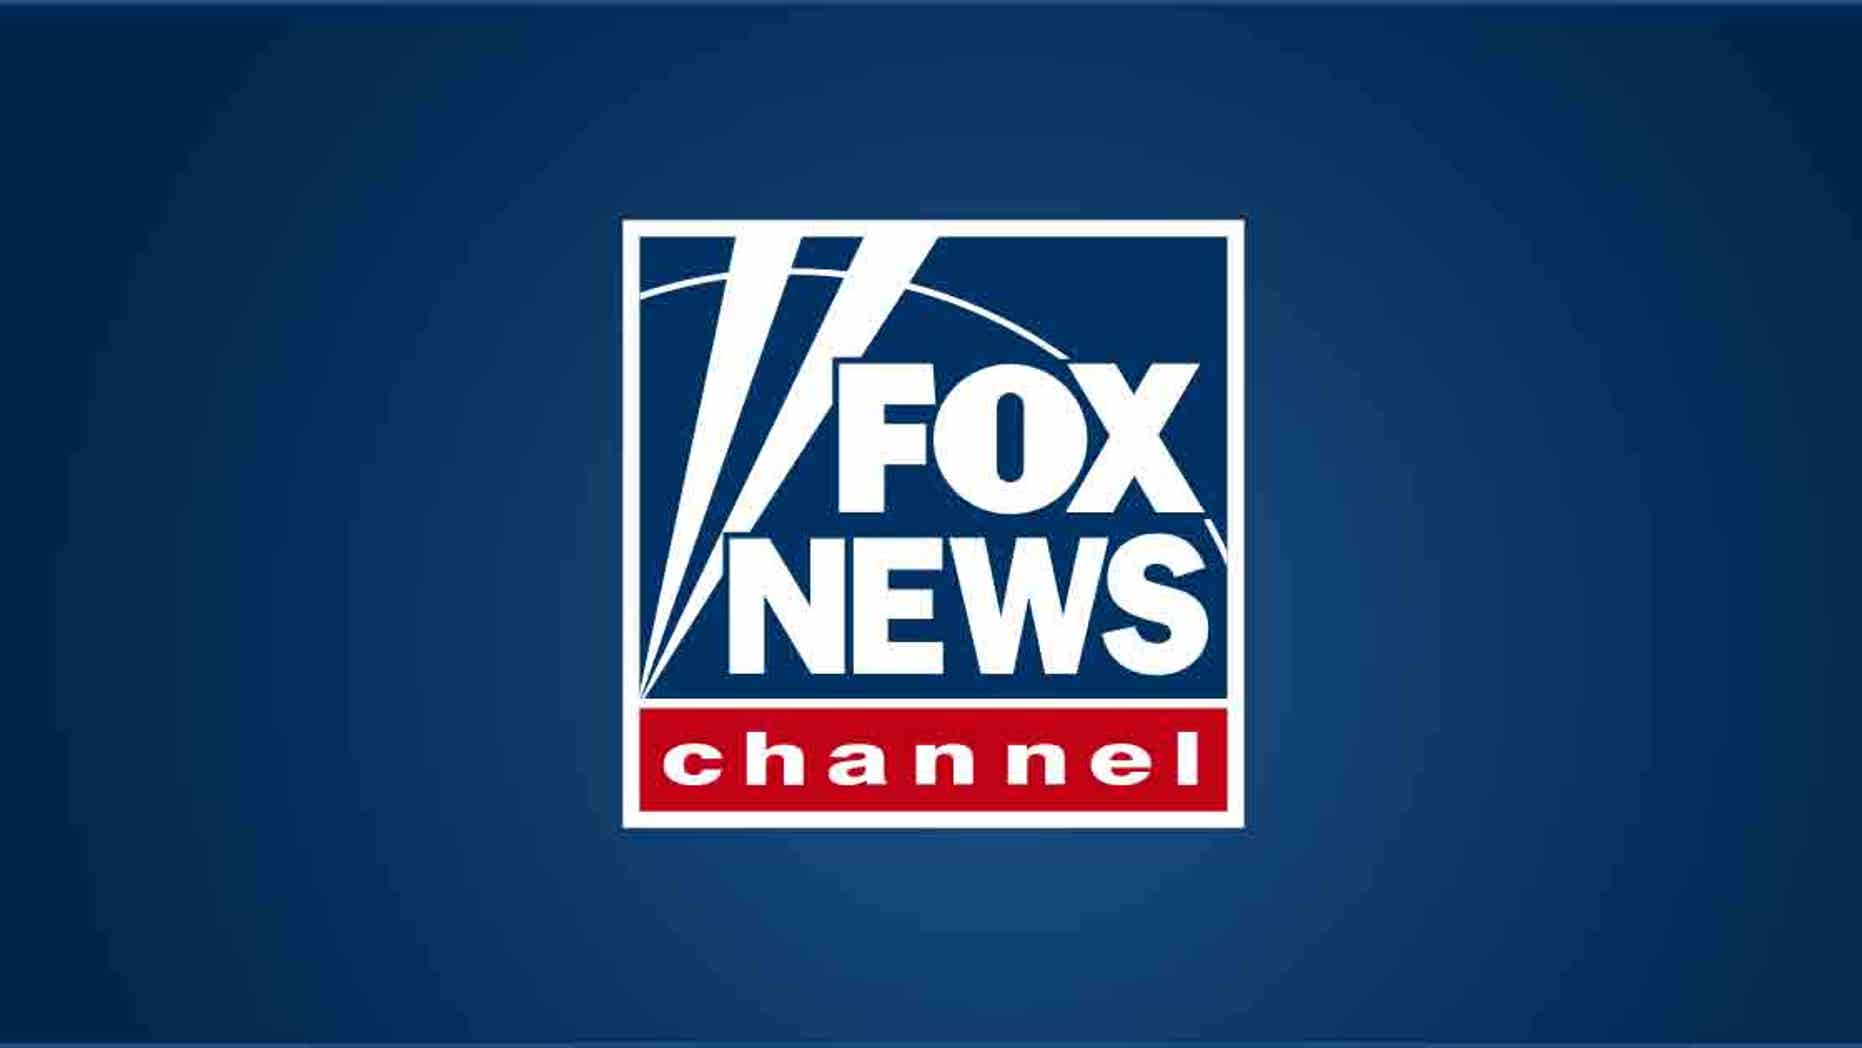 Westlake Legal Group fox-news-channel-logo Today on Fox News: Jan. 22, 2019 fox-news/media fox-news/entertainment/media fox news fnc/media fnc article 0e31e392-459c-562f-858e-7662d39265f2